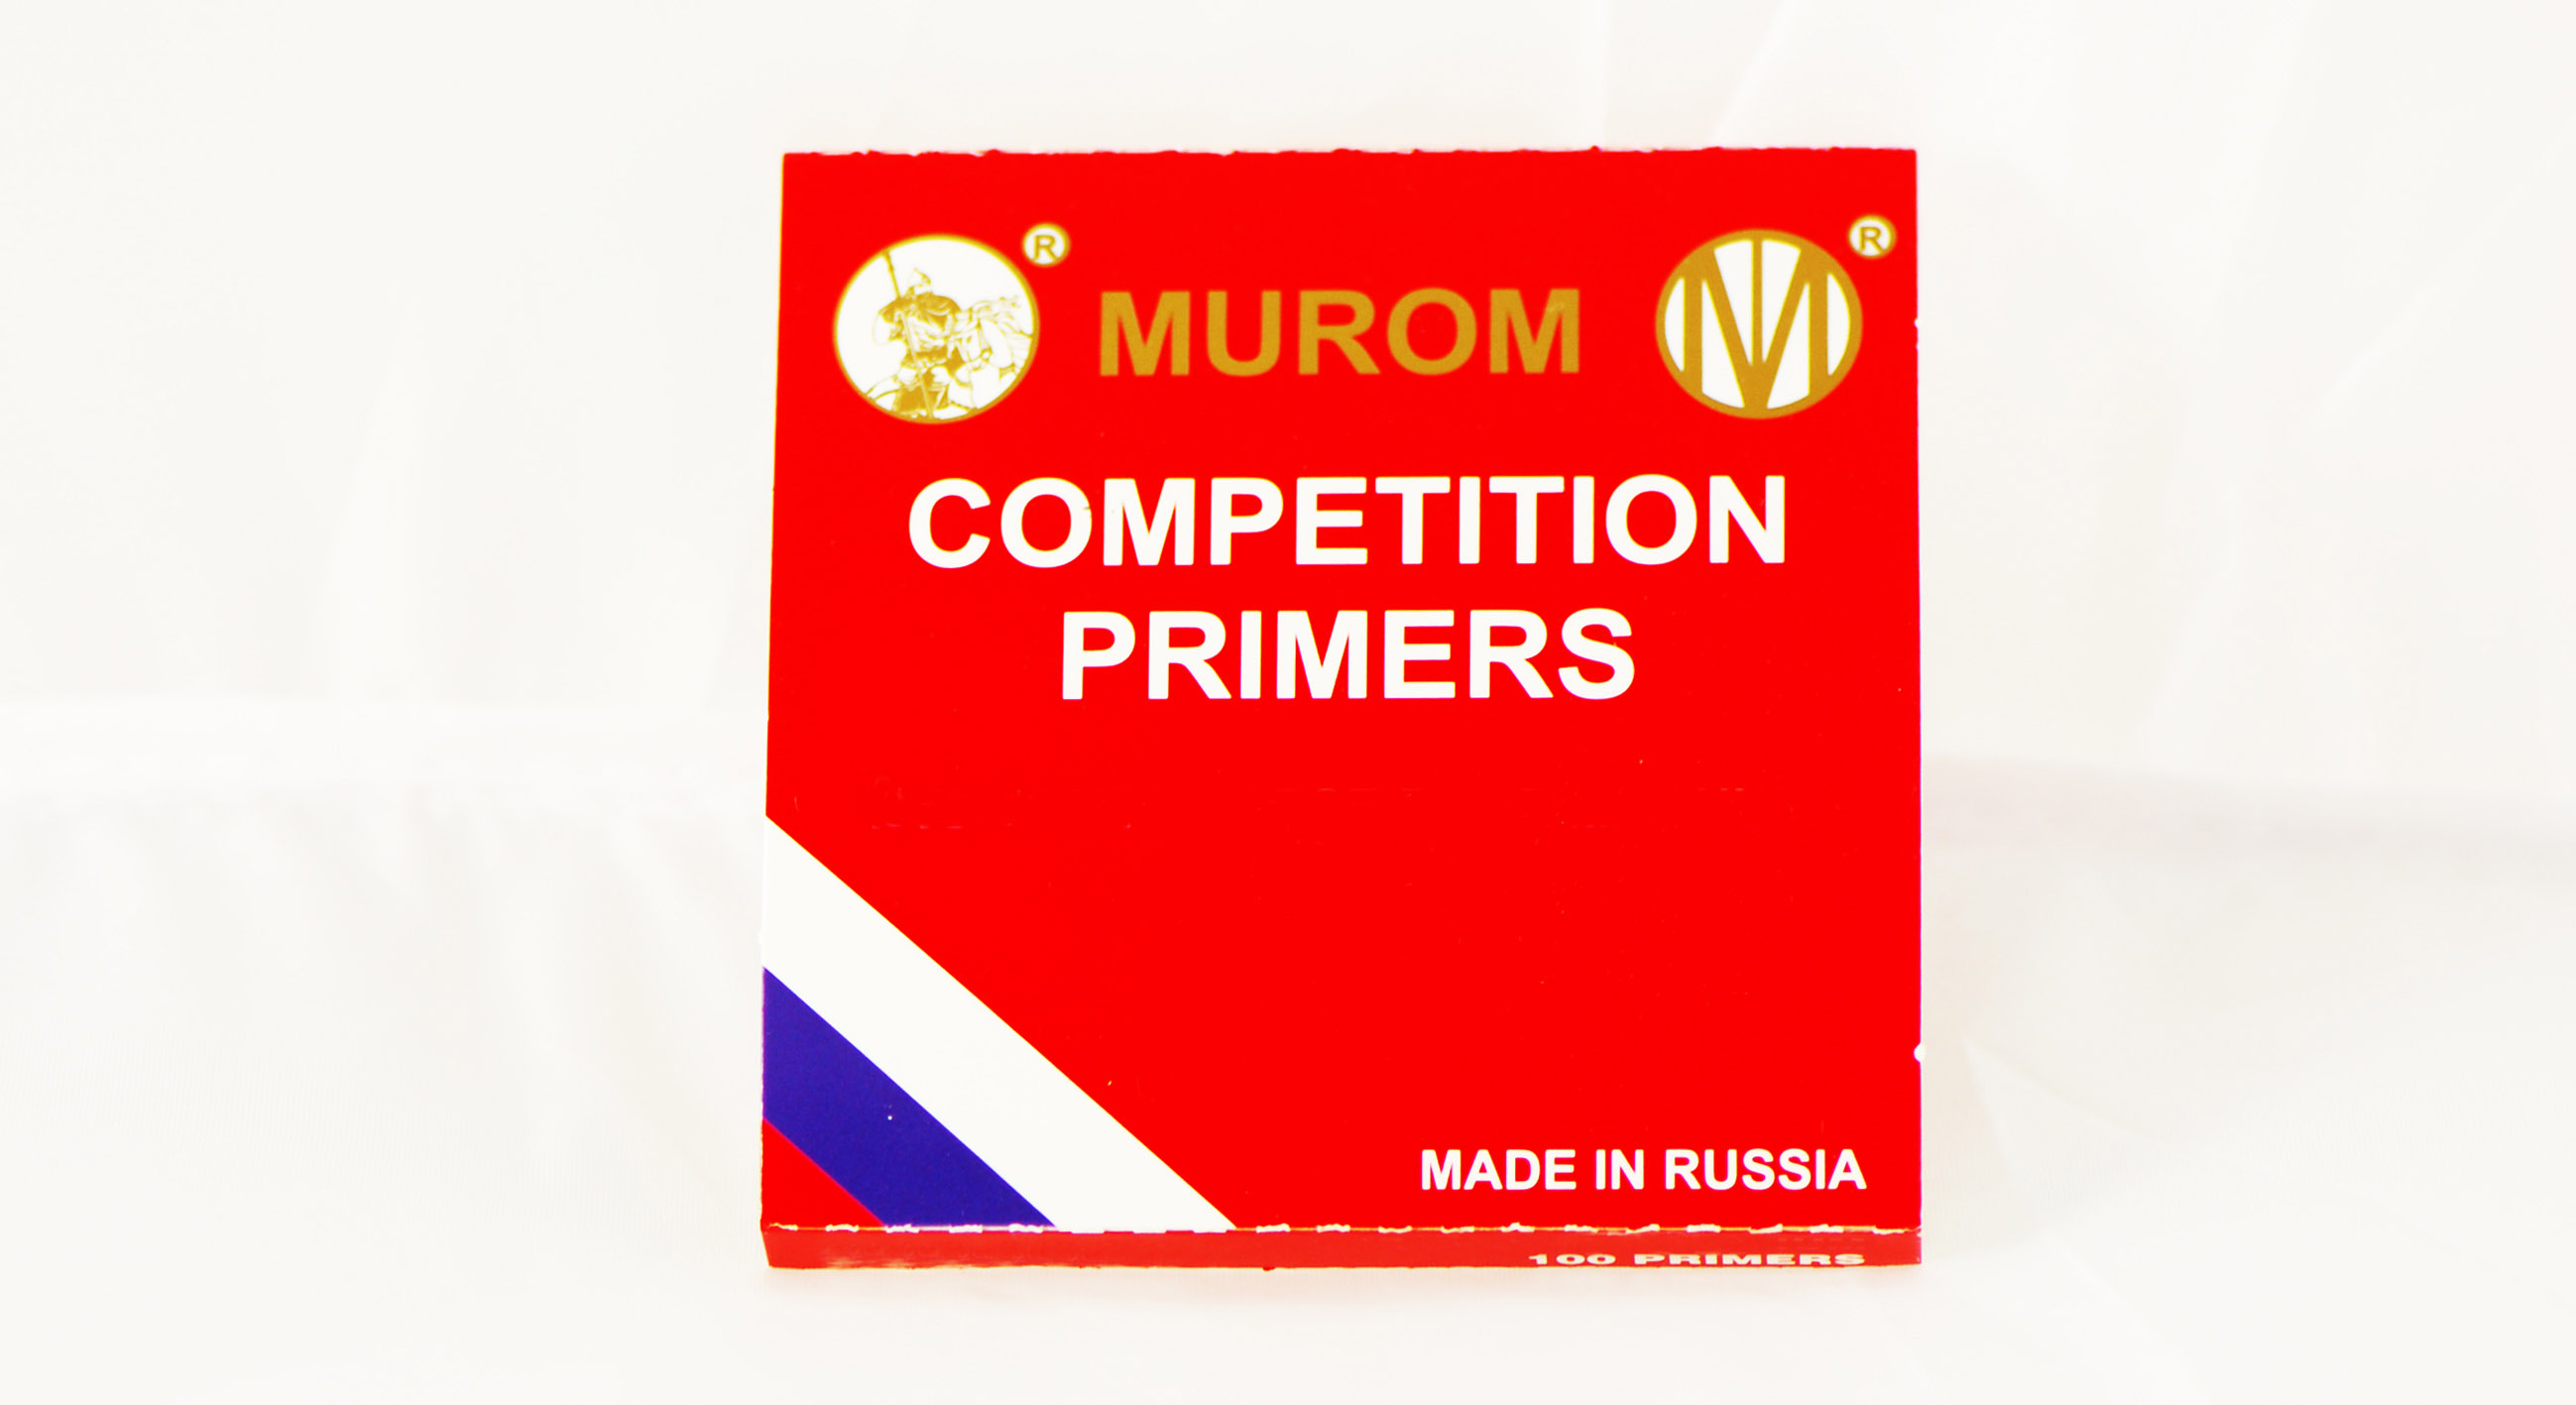 MUROM KVB-9 SMALL PISTOL PRIMERS